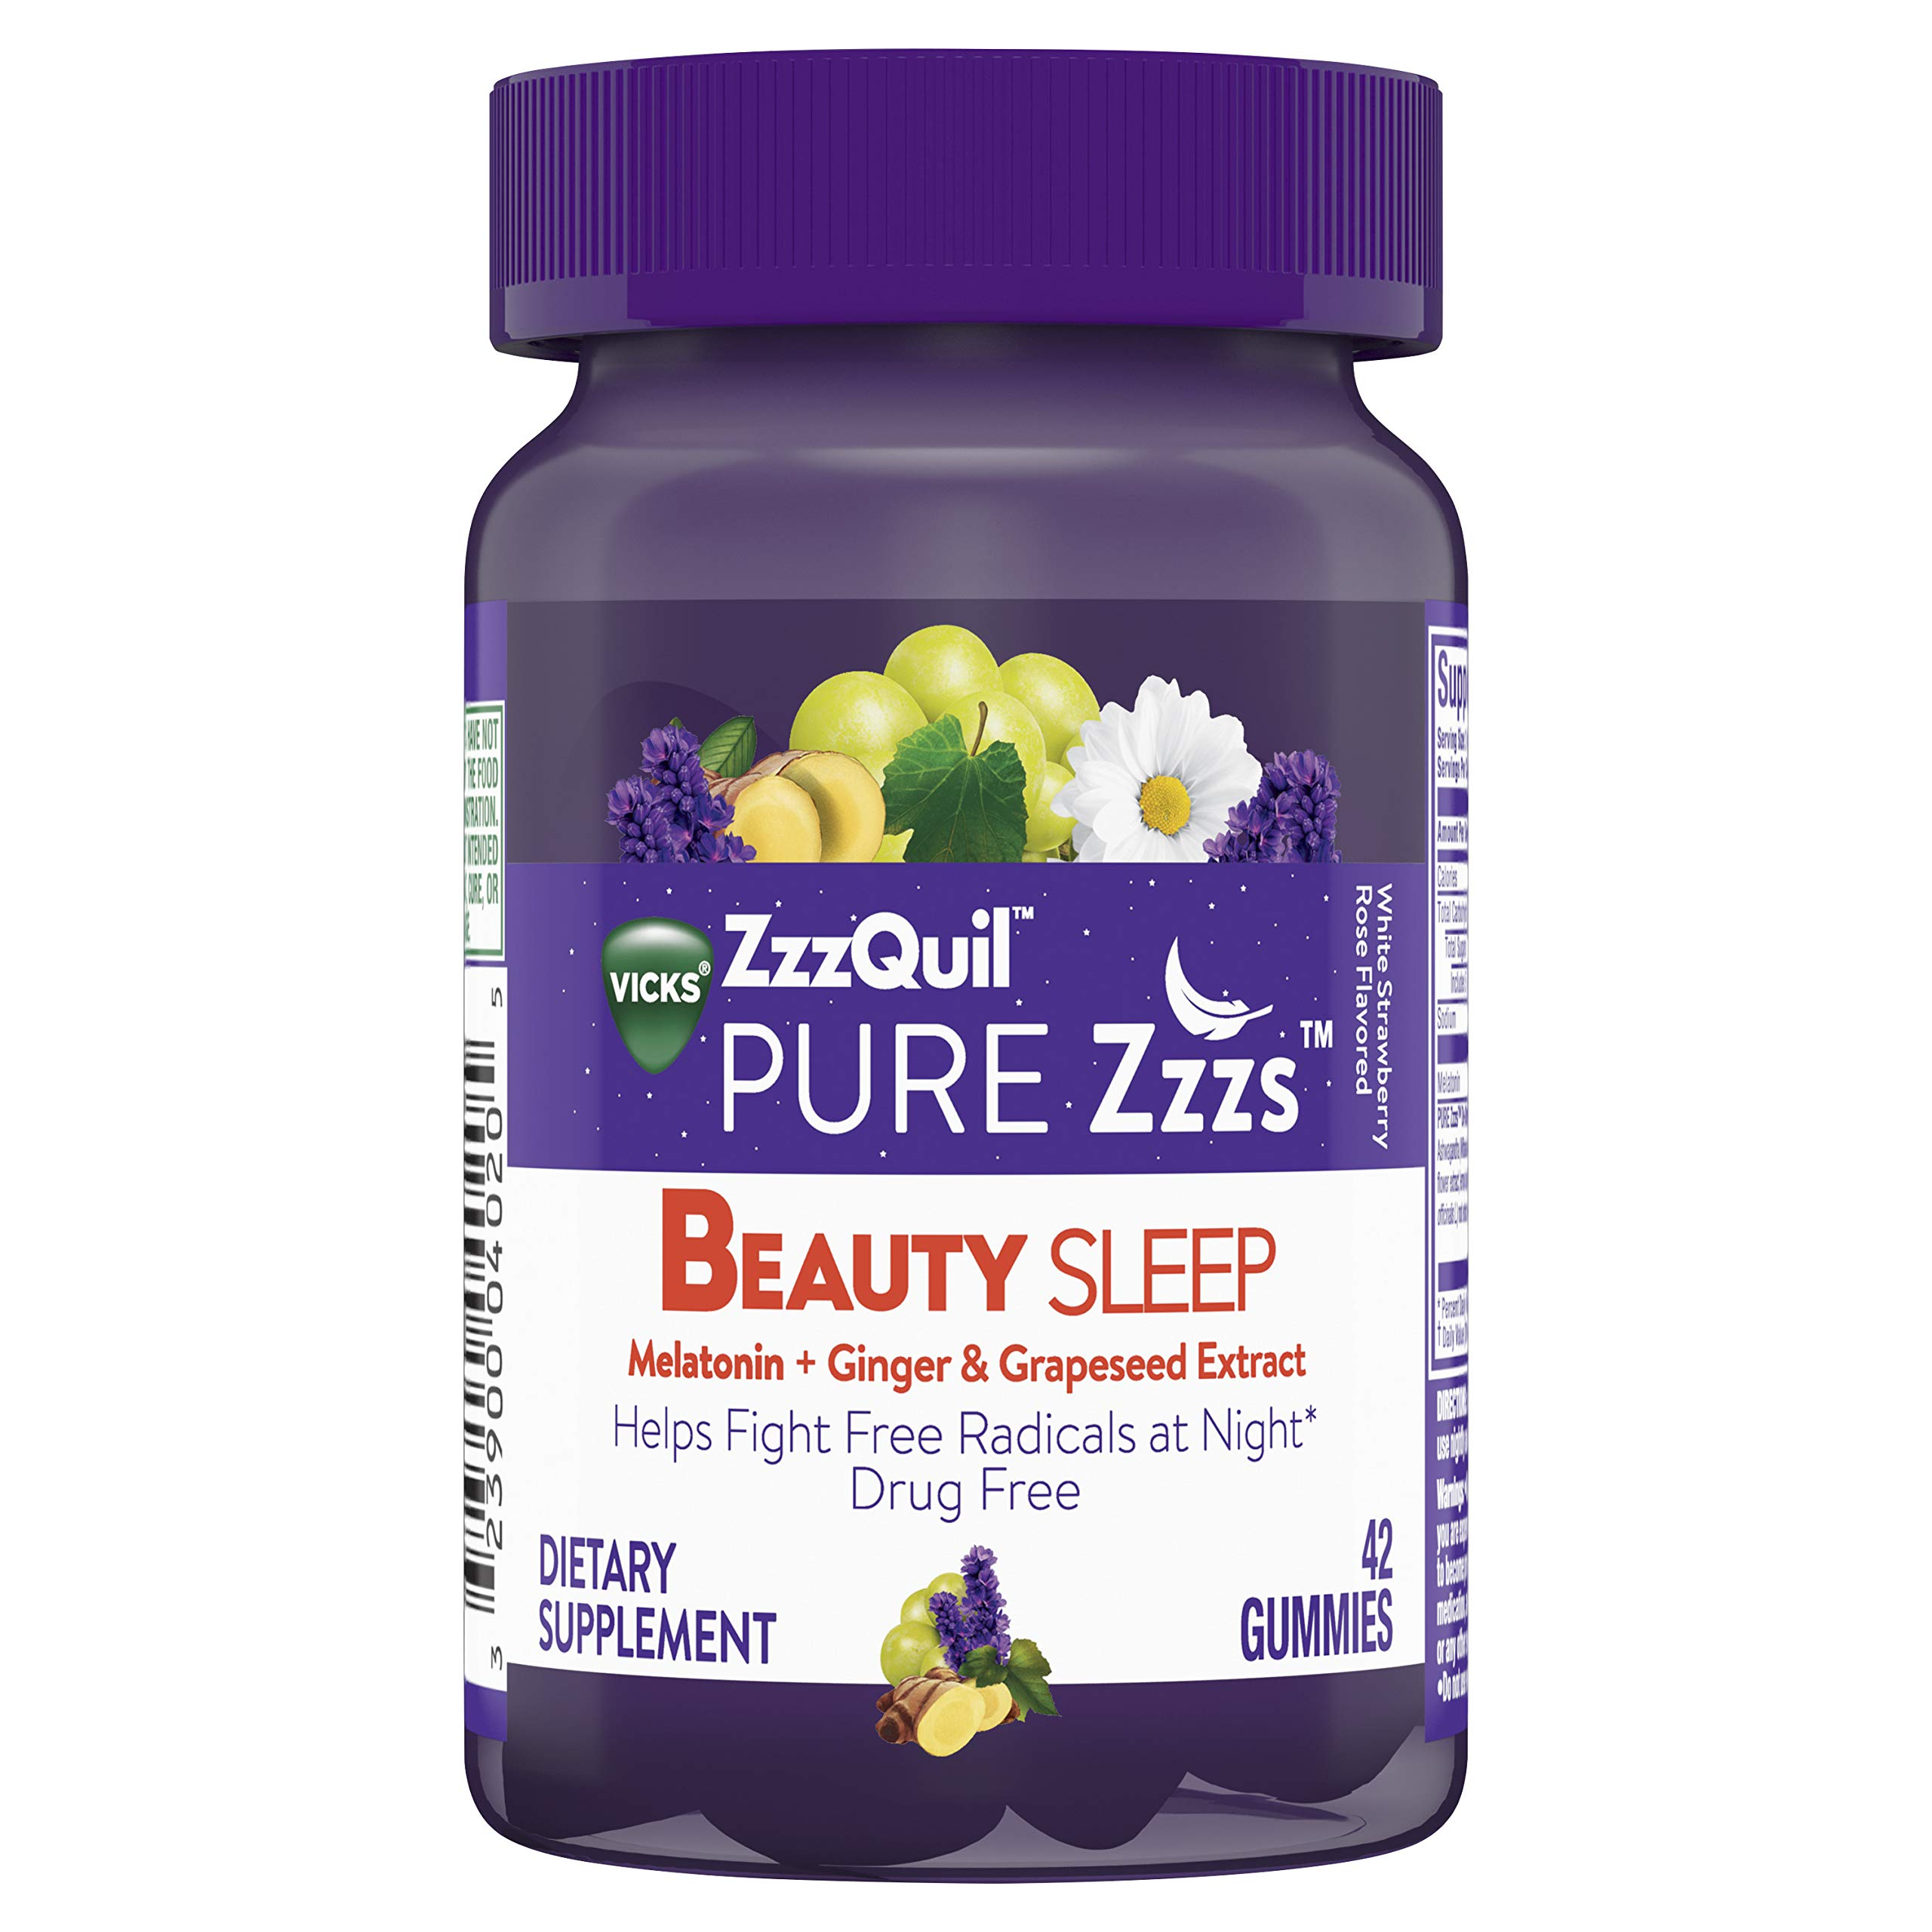 Vicks ZzzQuil Pure Zzzs Beauty Sleep Melatonin Gummies Sleep Aid with Ginger, Grape Seed Extract